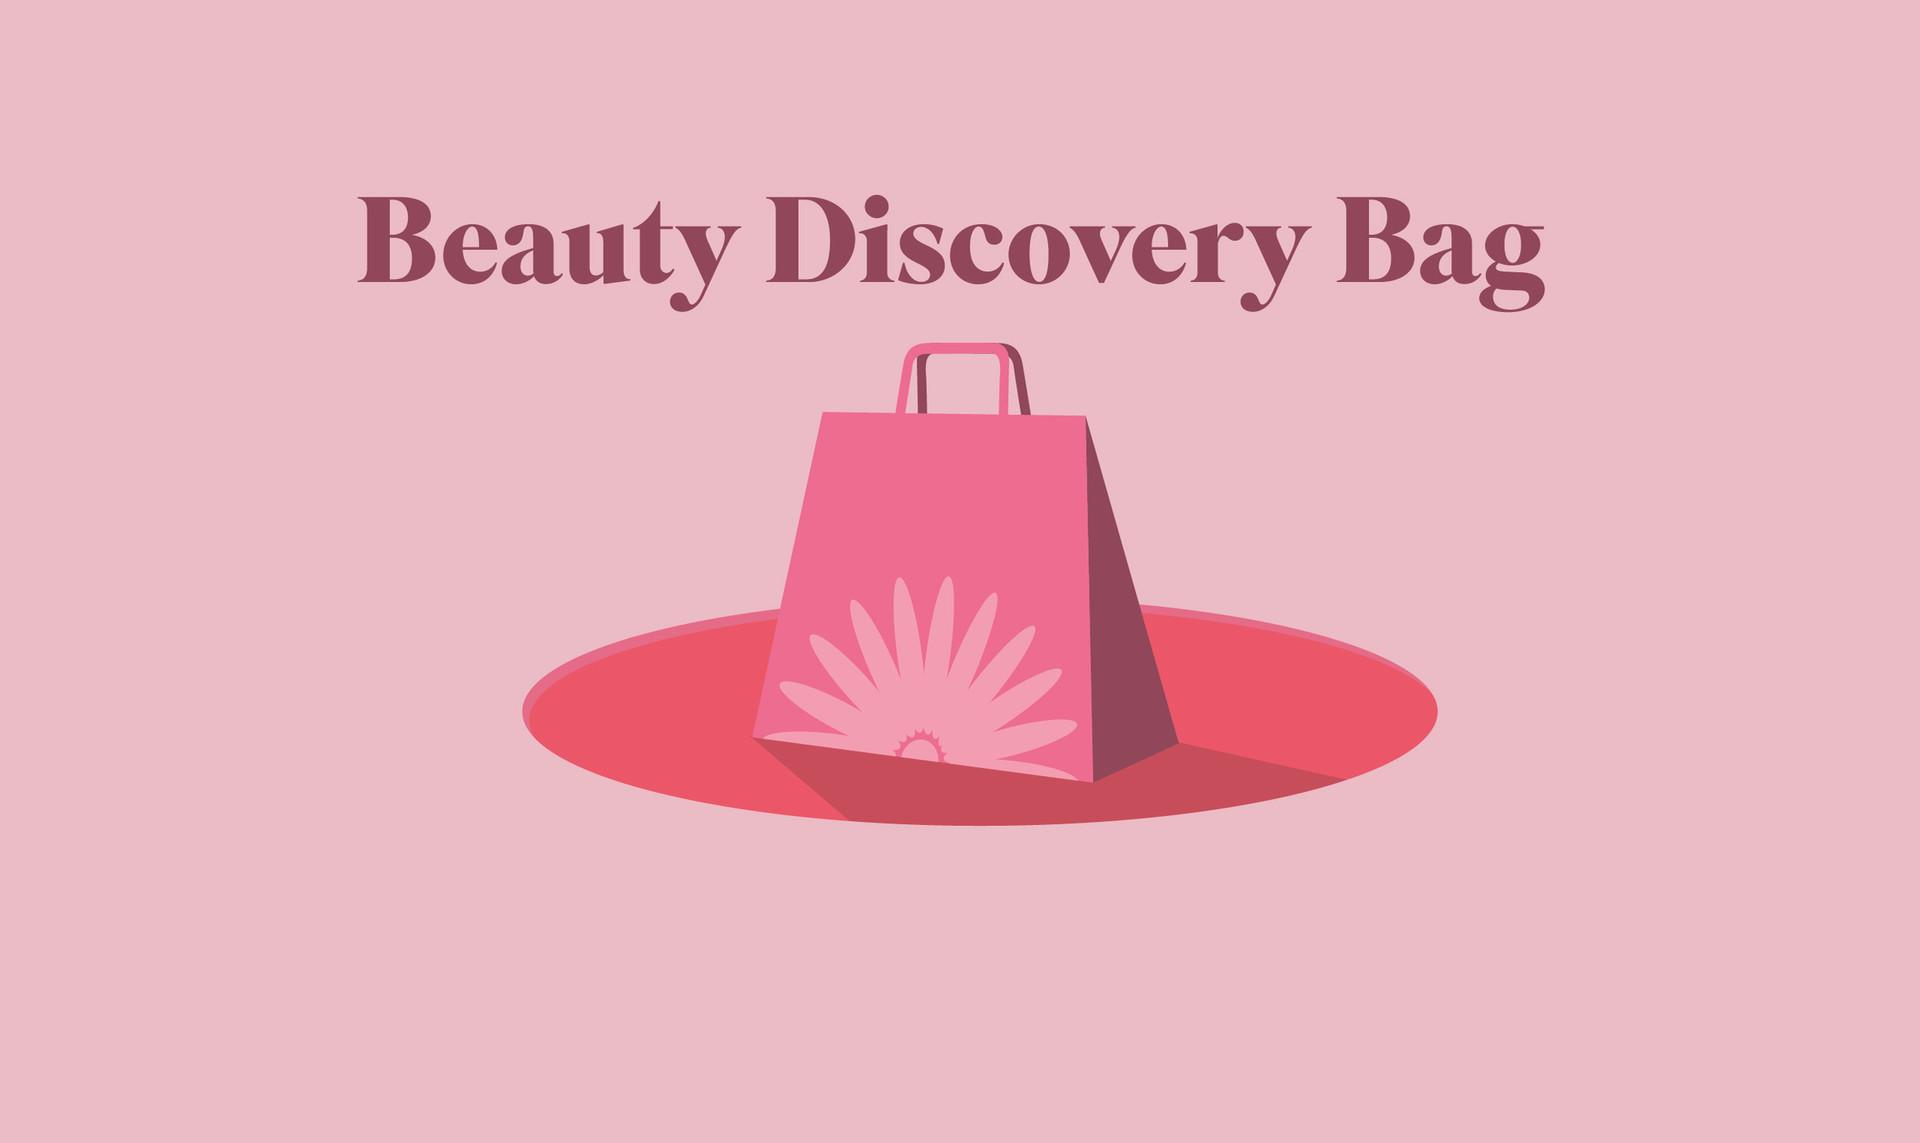 Beauty Discovery Bag